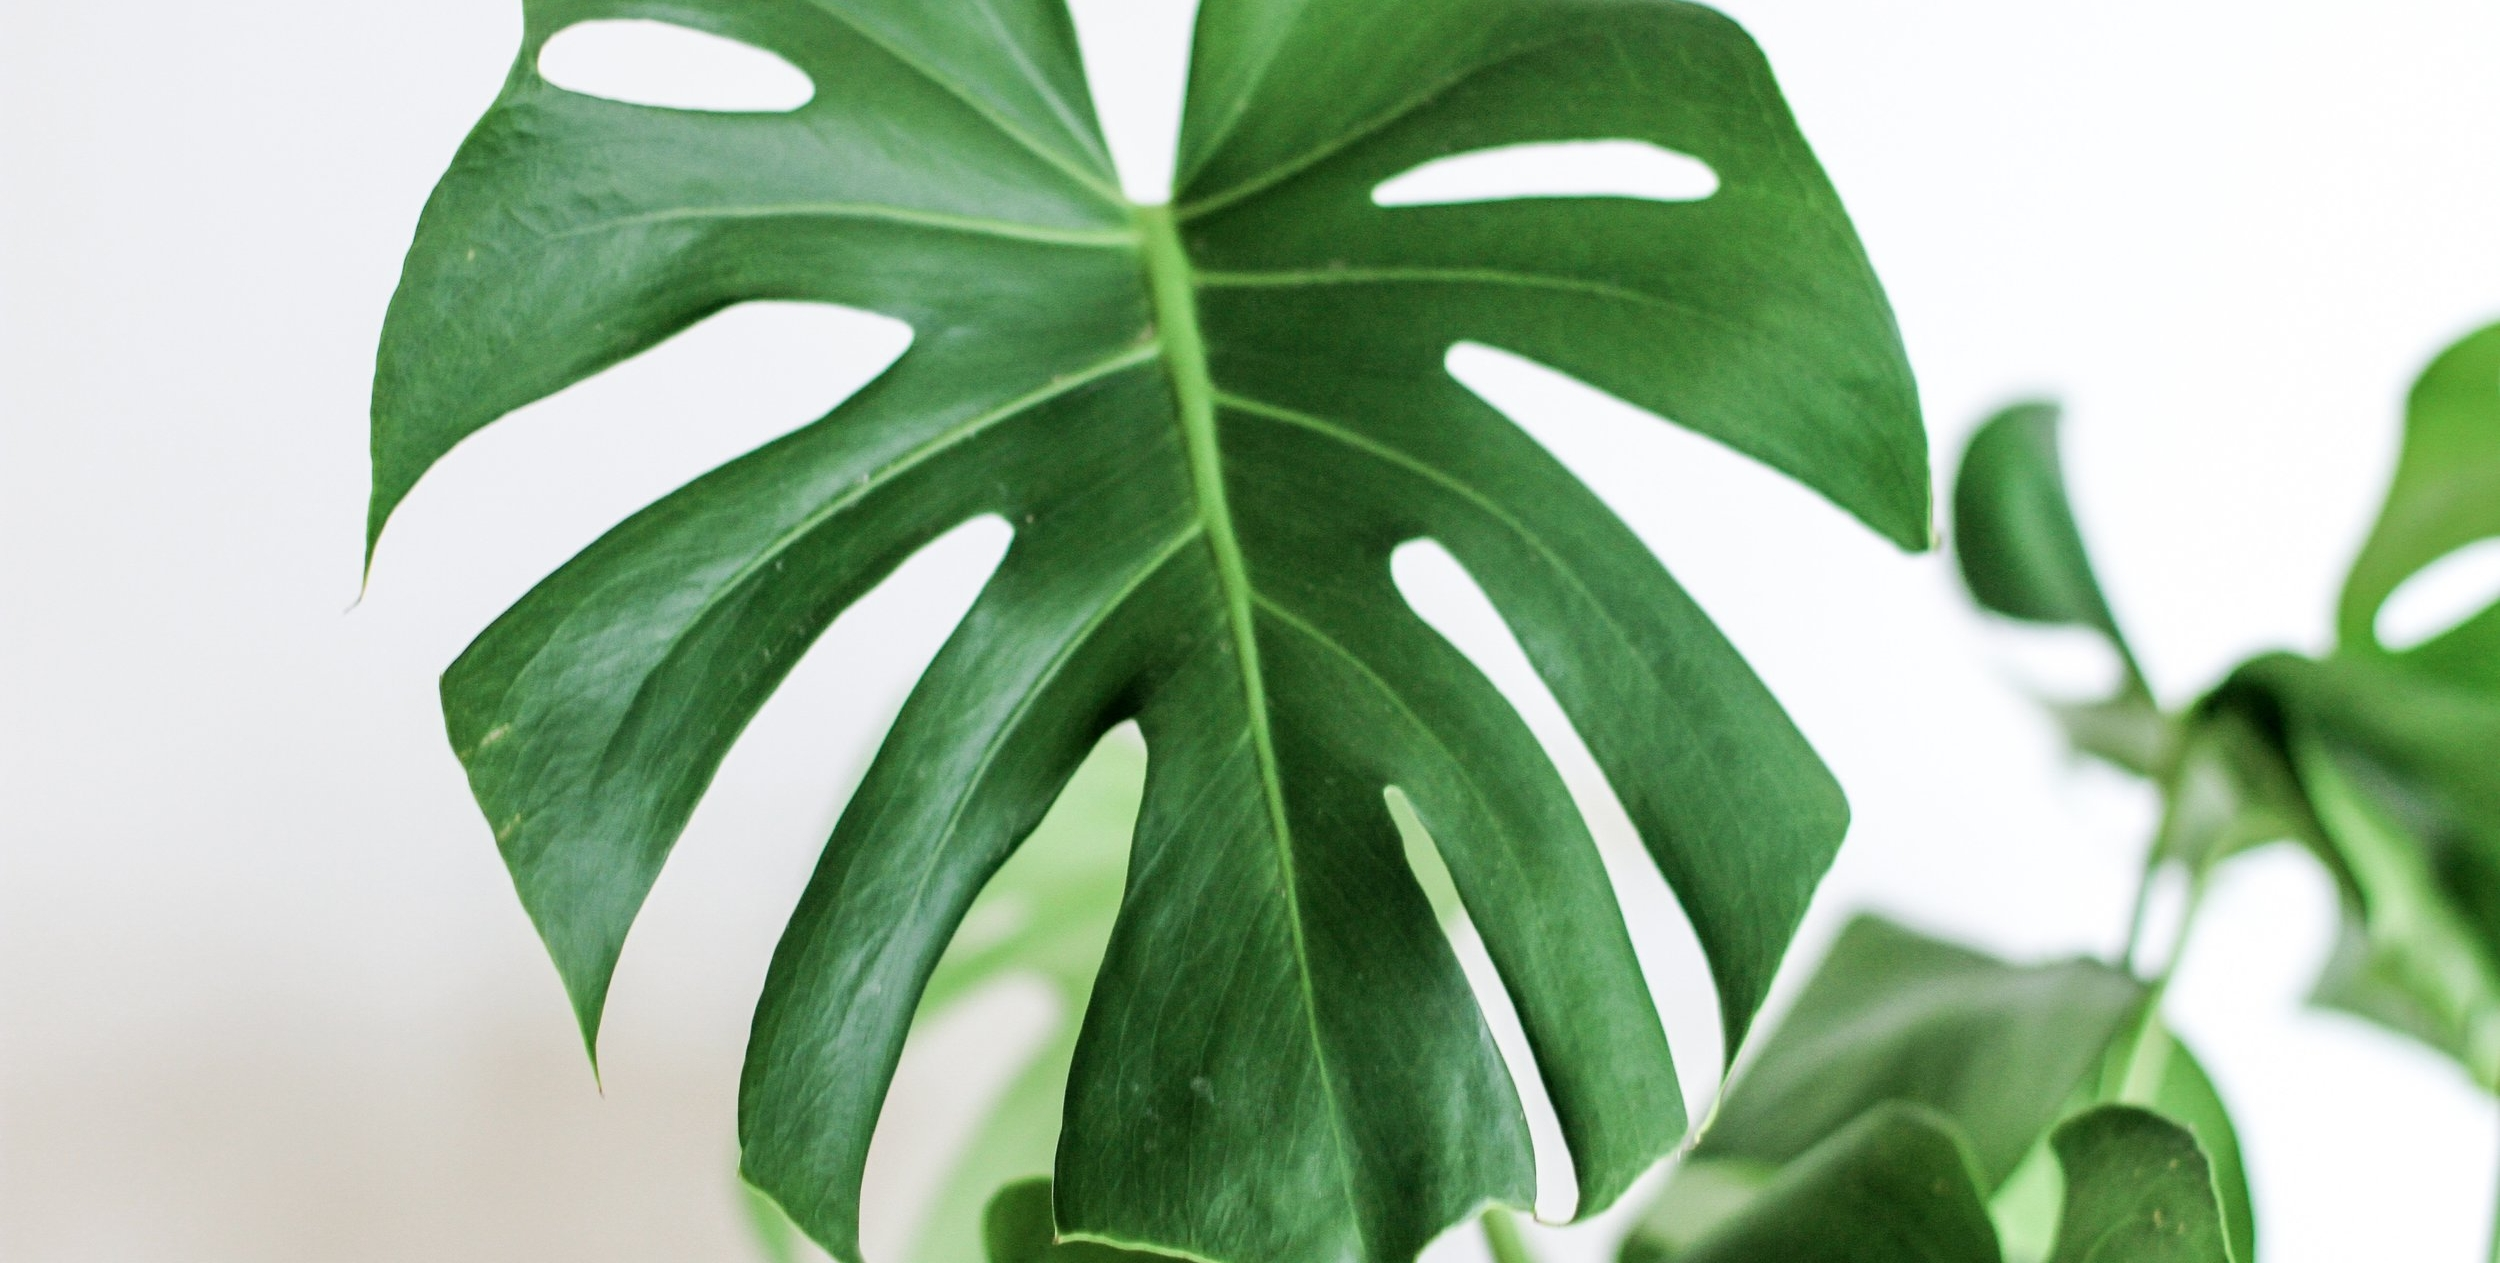 House plants are a great way to improve indoor air quality and reduce exposure to obesogens!